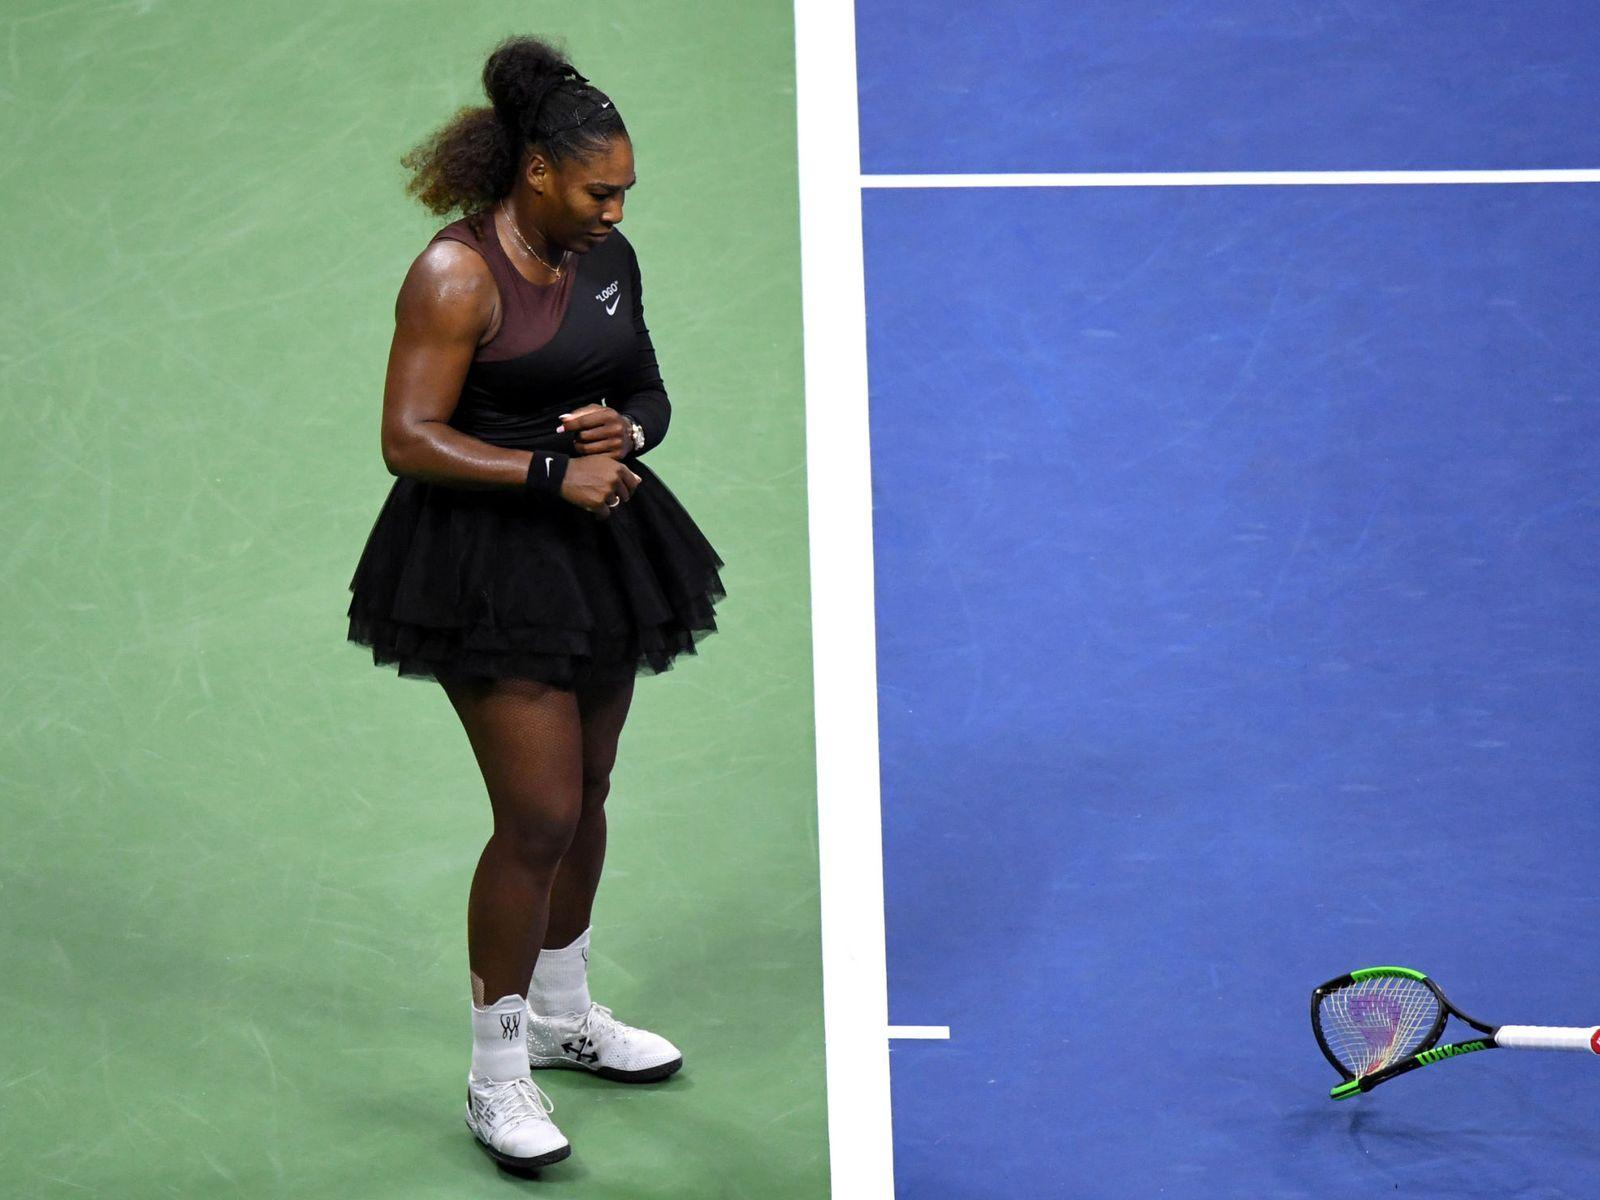 Serena Williams Addresses U.S. Open Controversy In New Interview